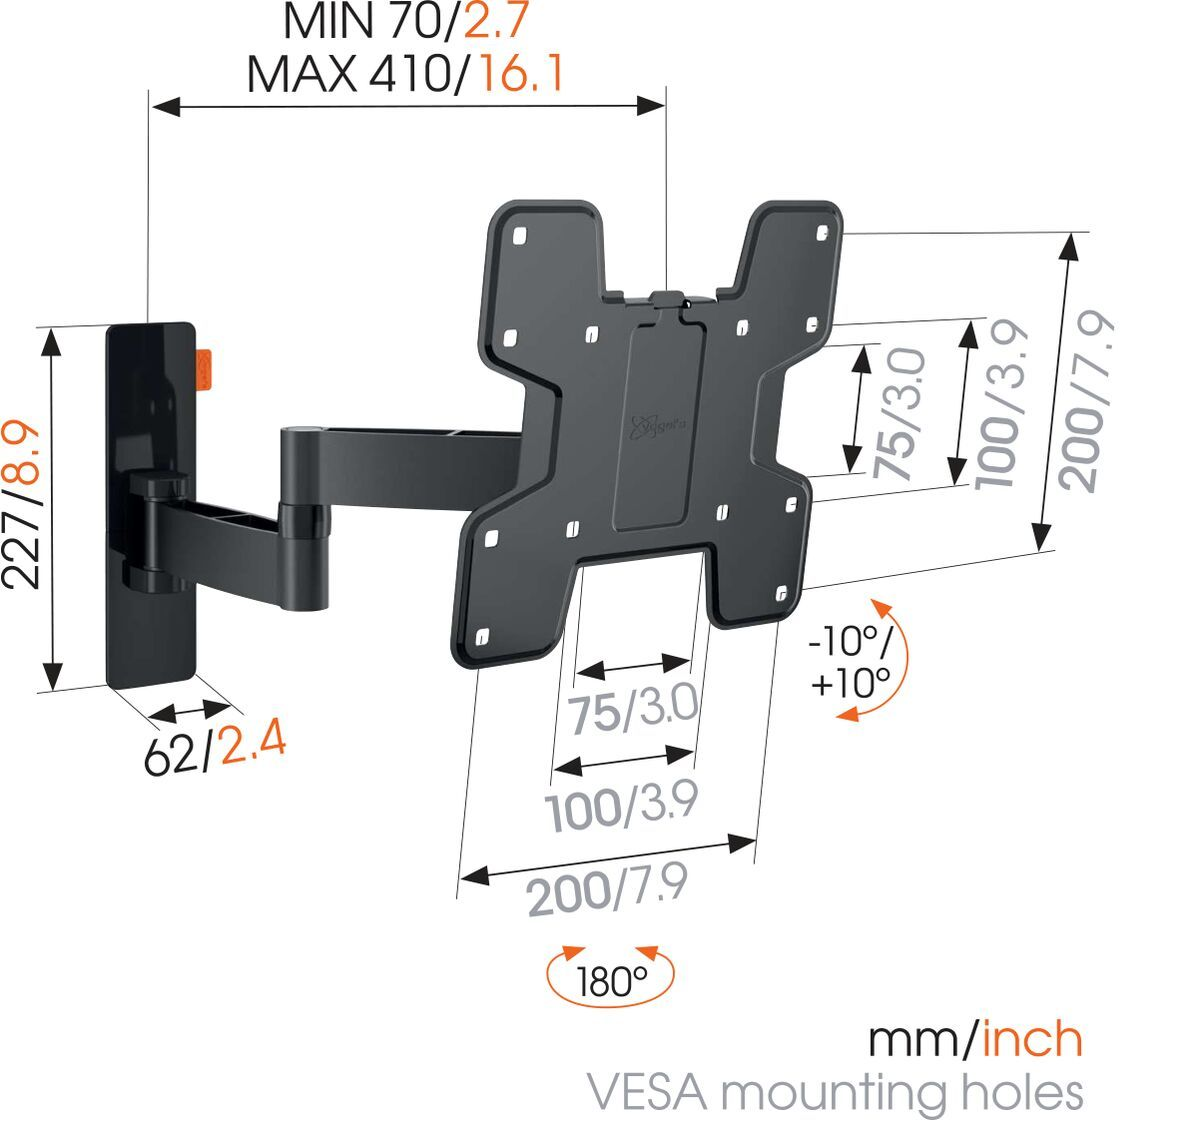 Vogel's WALL 3145 Full-Motion TV Wall Mount (black) - Suitable for 19 up to 43 inch TVs - Full motion (up to 180°) - Tilt -10°/+10° - Dimensions